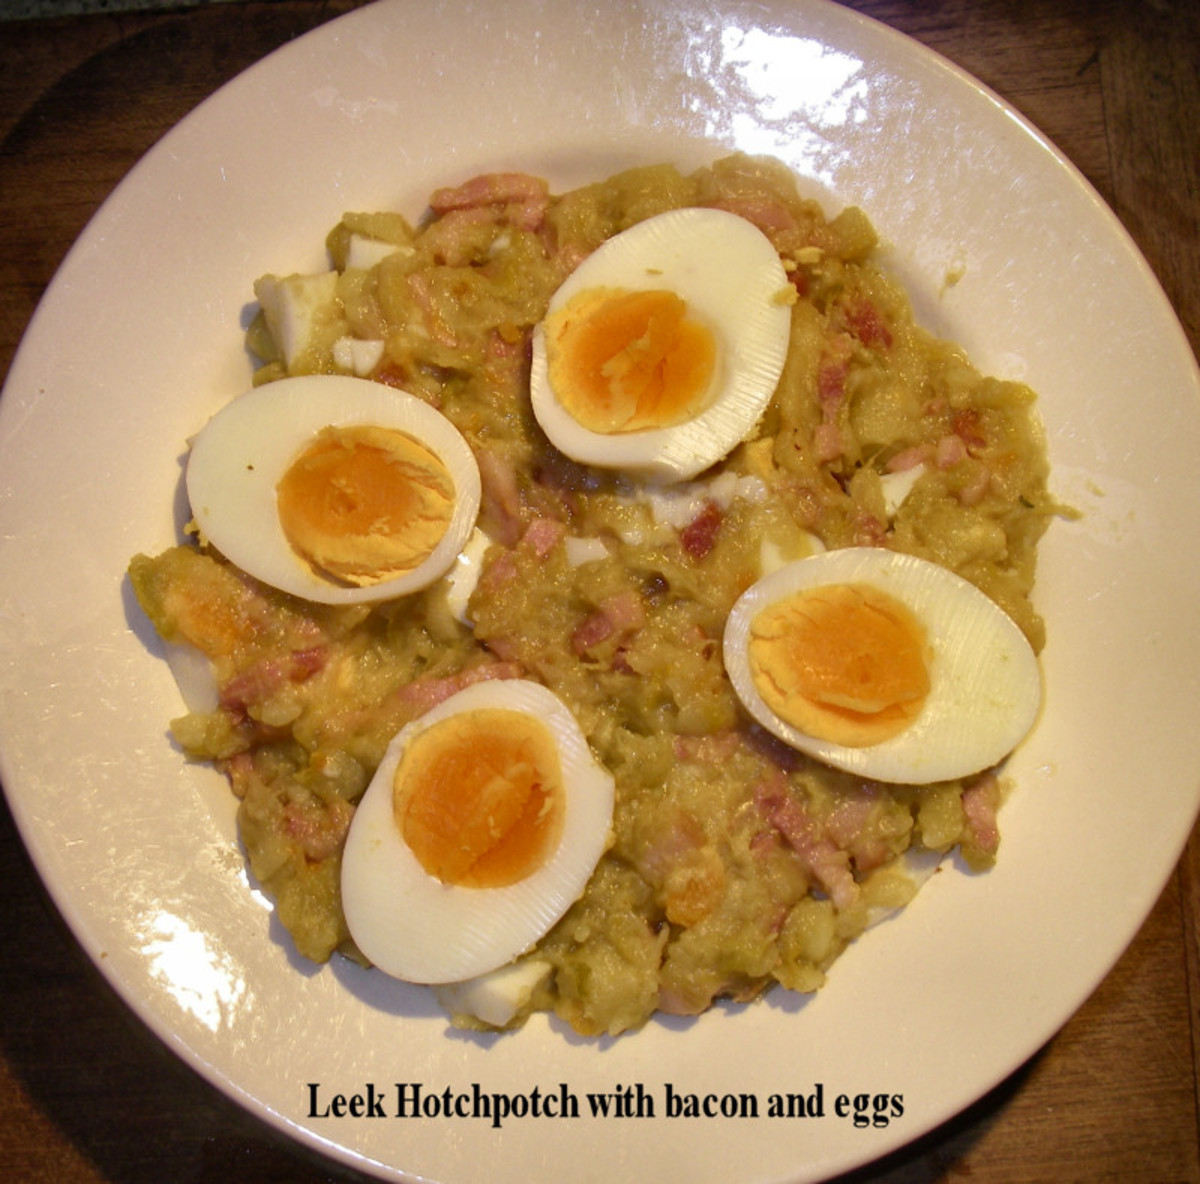 Leek Hotchpotch with eggs and diced bacon.